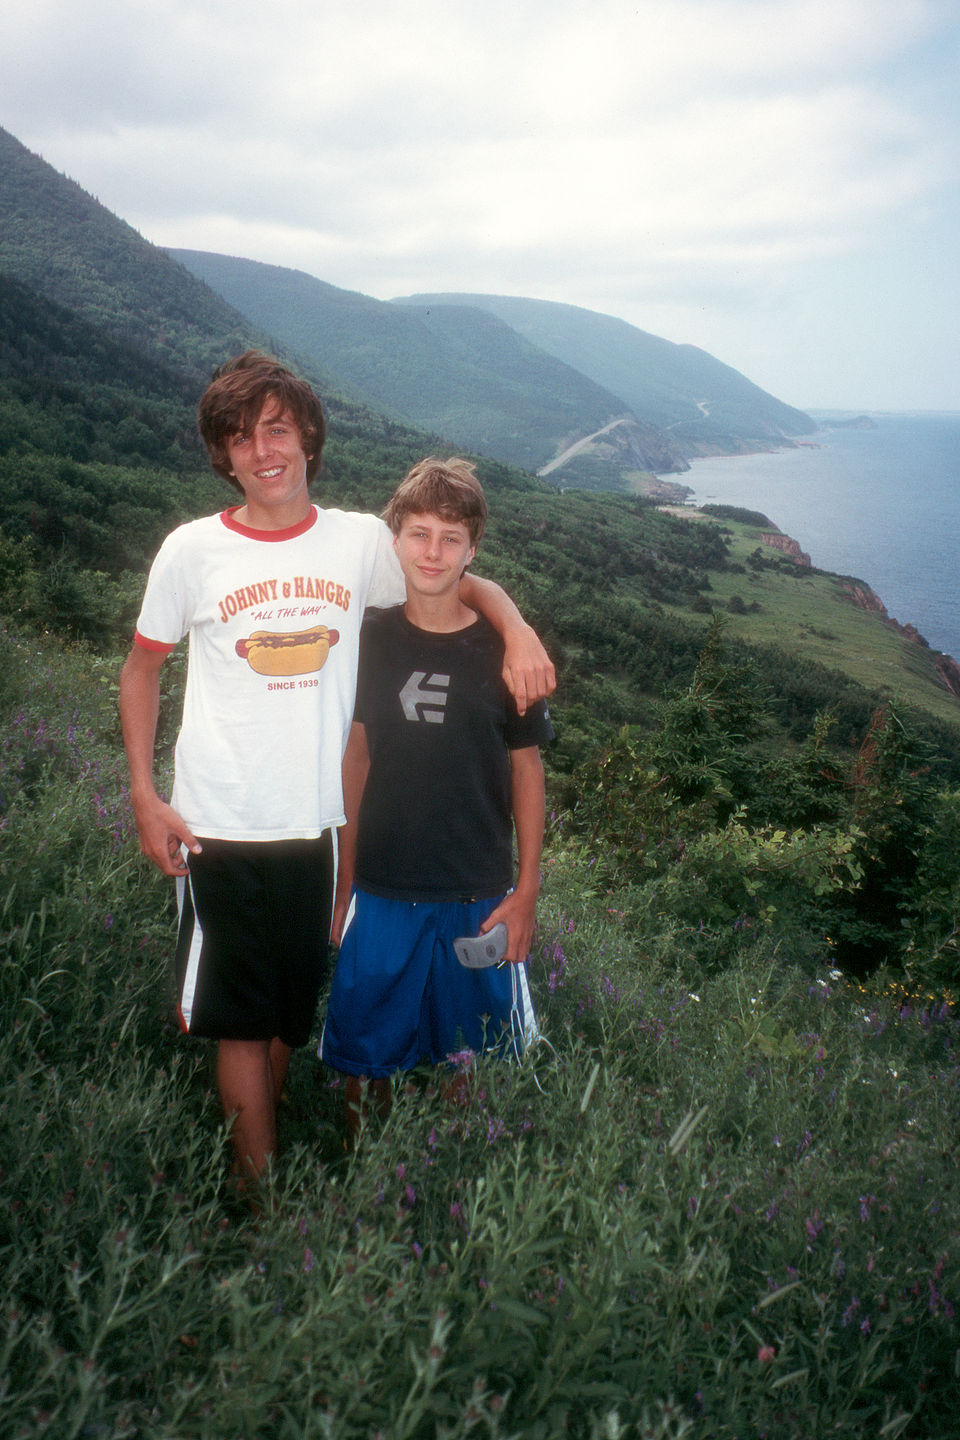 Brotherly love on the Skyline Trail